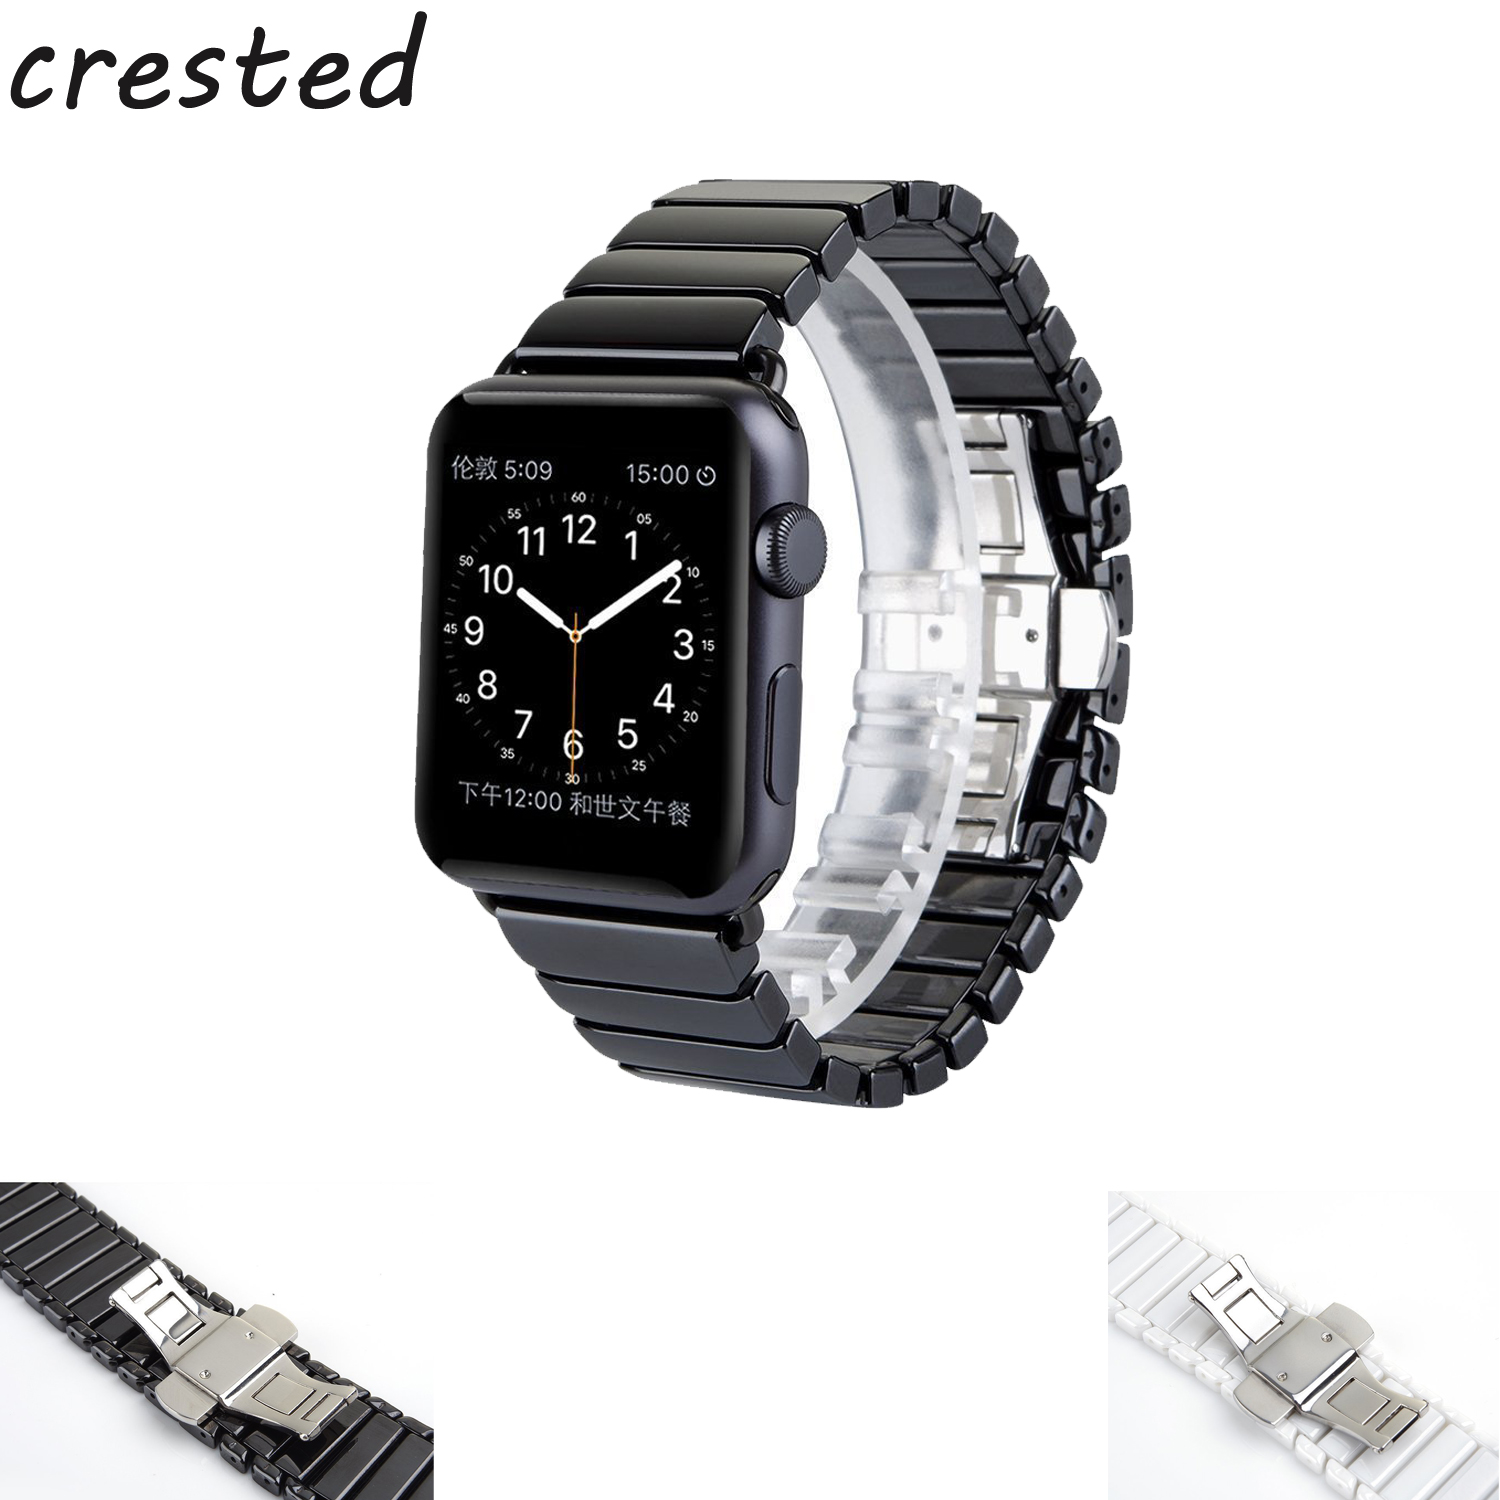 CRESTED Band for Apple Watch 3 42mm/38mm iwatch 3 2 1 Ceramic wrist band Link Bracelet Butterfly loop band strap crested nylon band strap for apple watch band 3 42mm 38mm survival rope wrist bracelet watch strap for apple iwatch 3 2 1 black